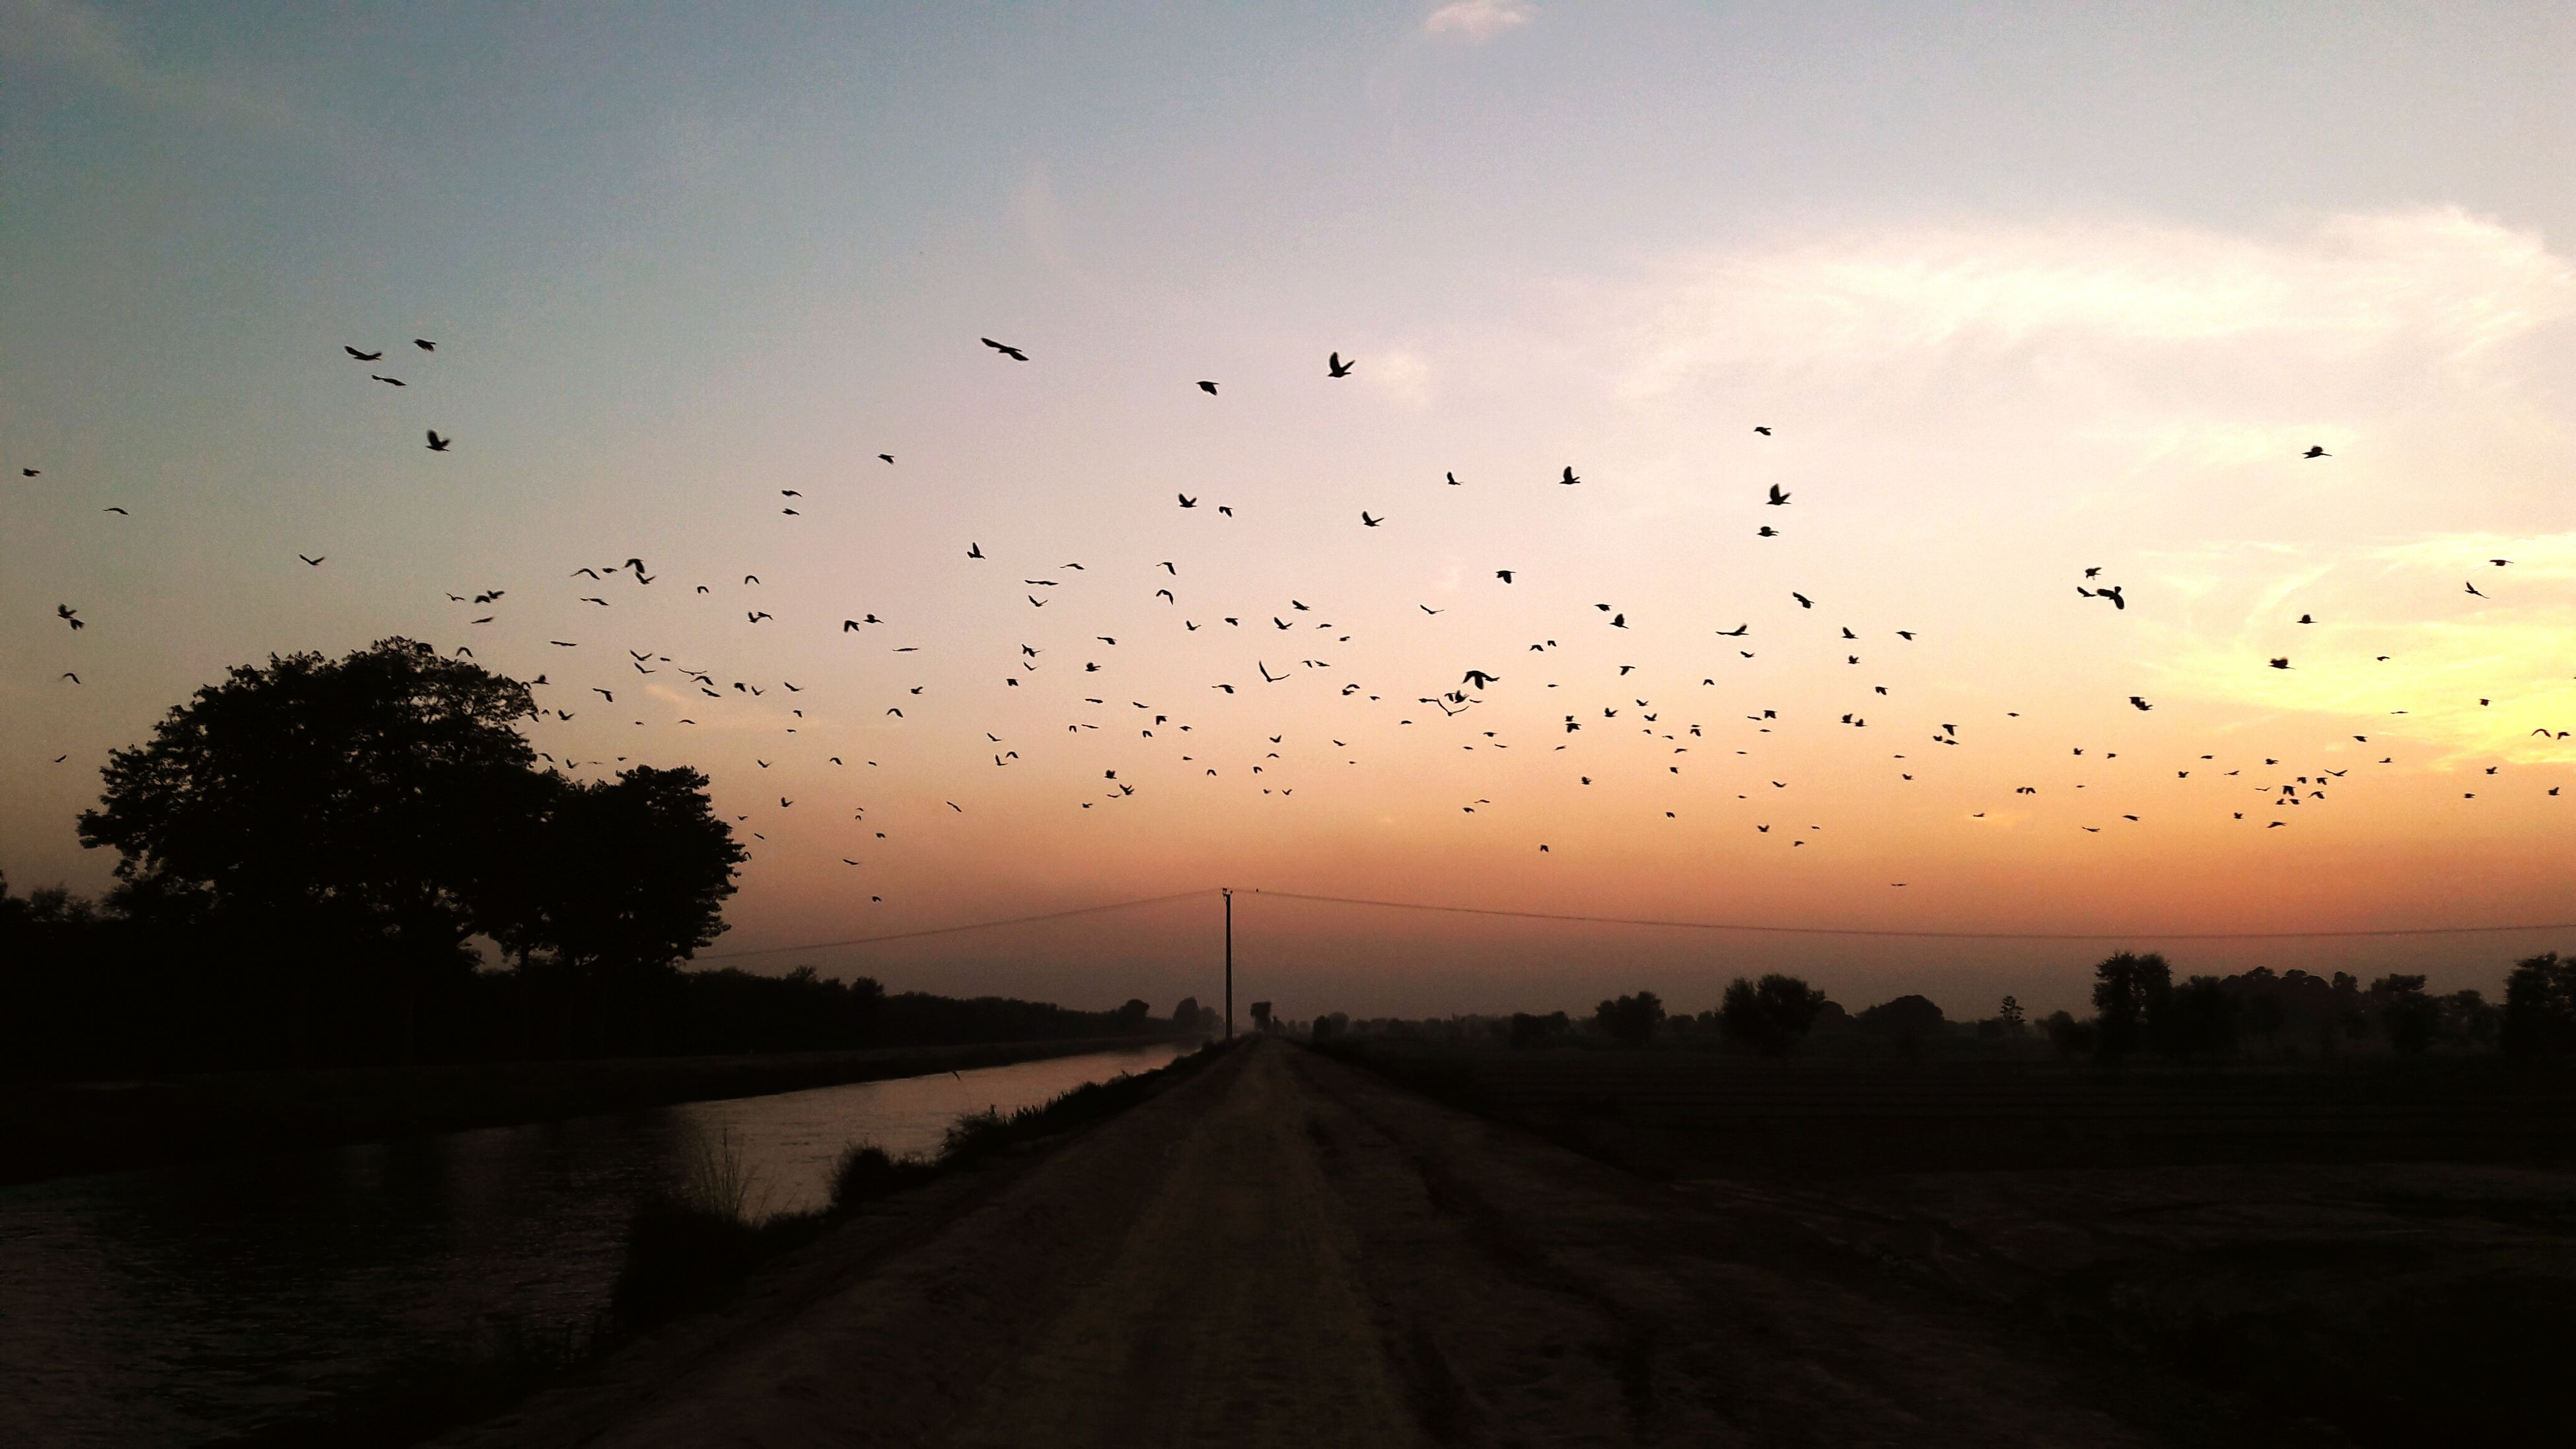 bird, flying, animal themes, animals in the wild, flock of birds, sunset, wildlife, sky, silhouette, nature, scenics, mid-air, tranquil scene, beauty in nature, water, cloud - sky, tranquility, medium group of animals, landscape